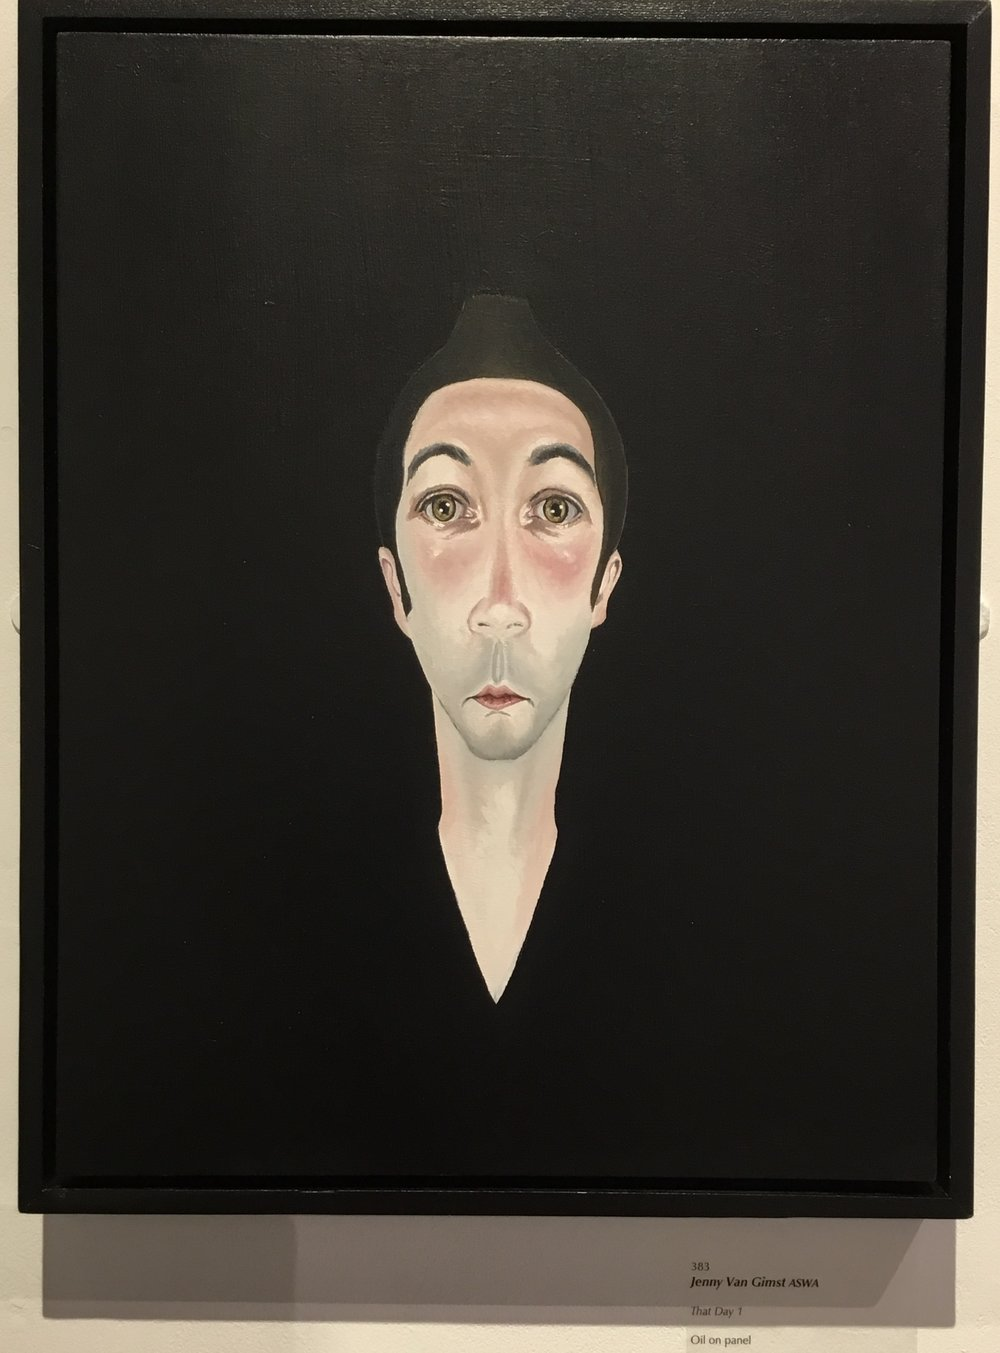 Jenny van Gimst - That Day 1. Minimalistic and expressive, and a bit of Modigliani revisited.